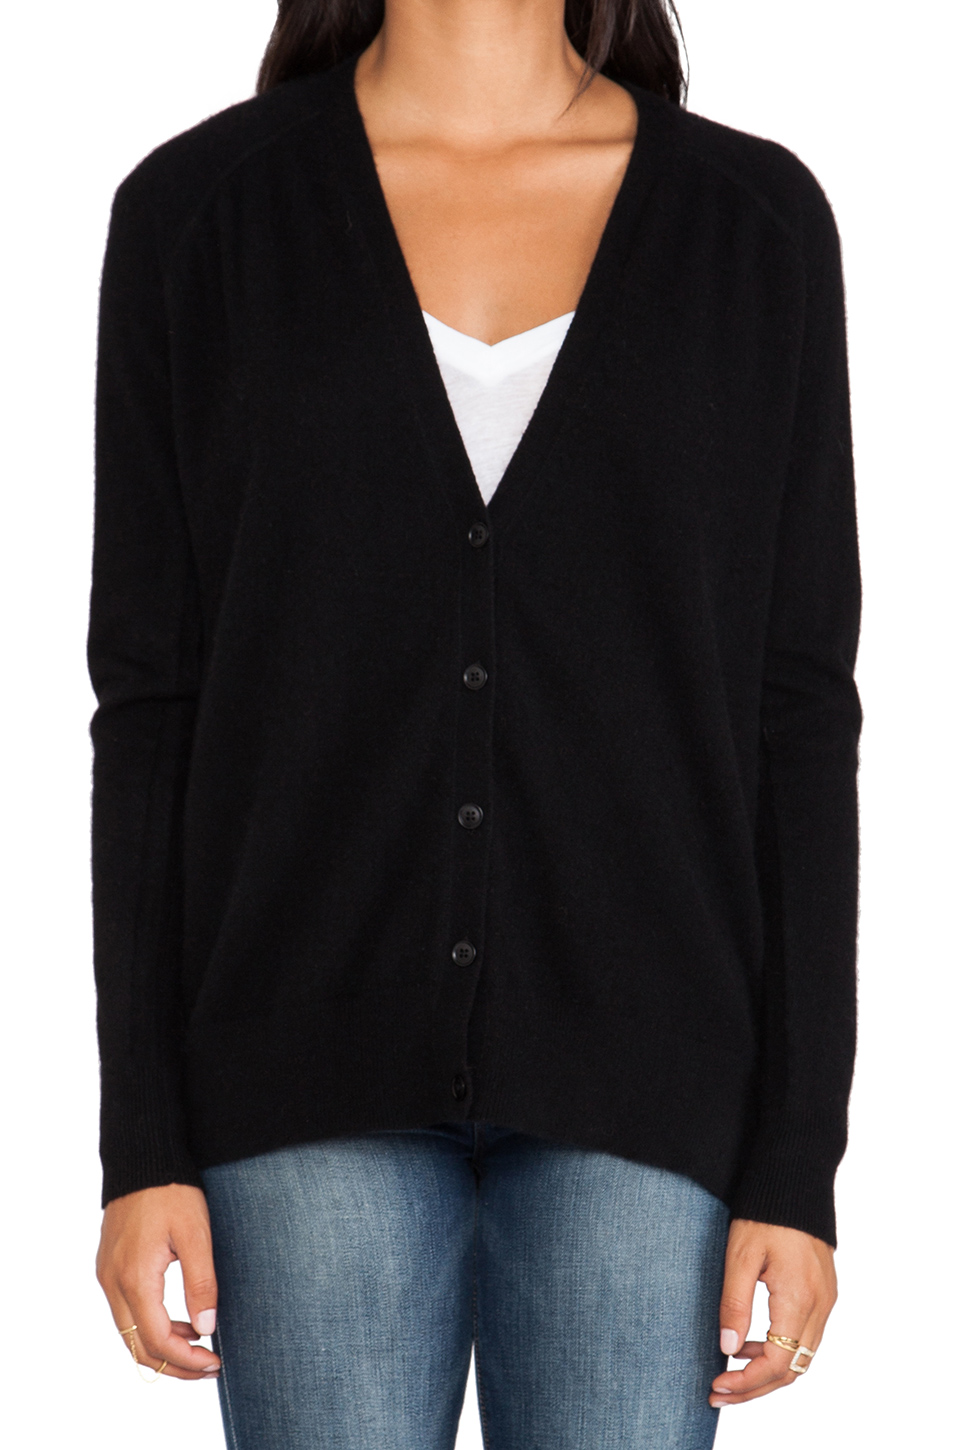 360 sweater milan cardigan in black from revolveclothing.com